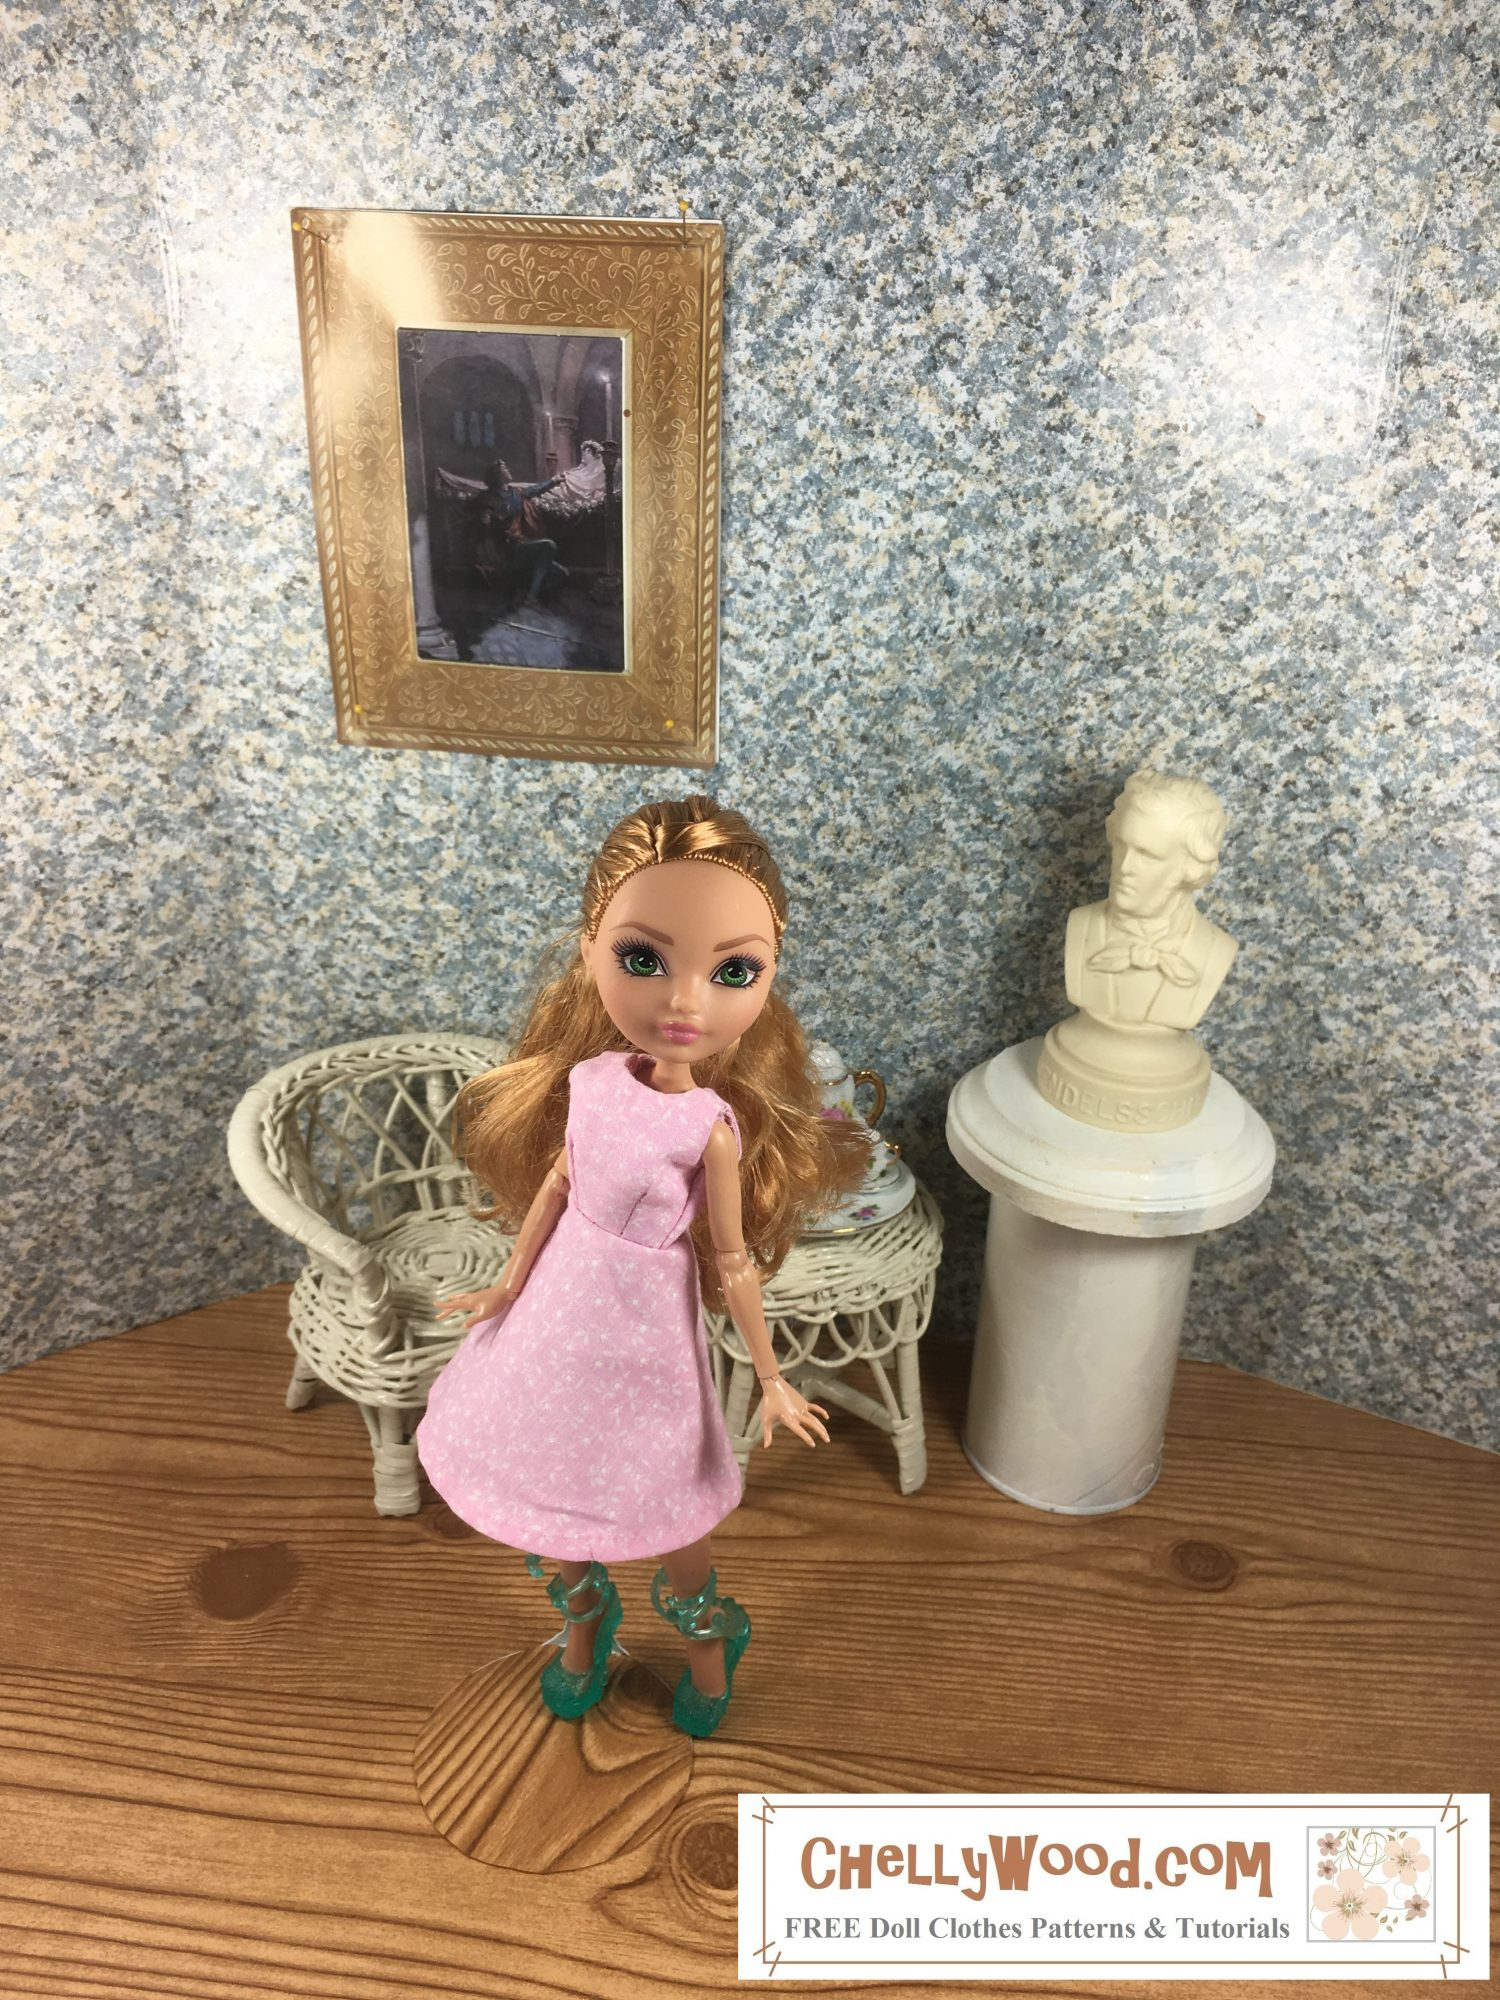 Here we see an Ever After High doll wearing a simple A line dress in a pink floral cotton print. She stands in an elegant ballroom with the bust of a composer nearby. Behind her is a wicker chair and on a wicker table sits a tiny tea set. there is a gold framed painting of Romeo and Juliet hanging on the wall.